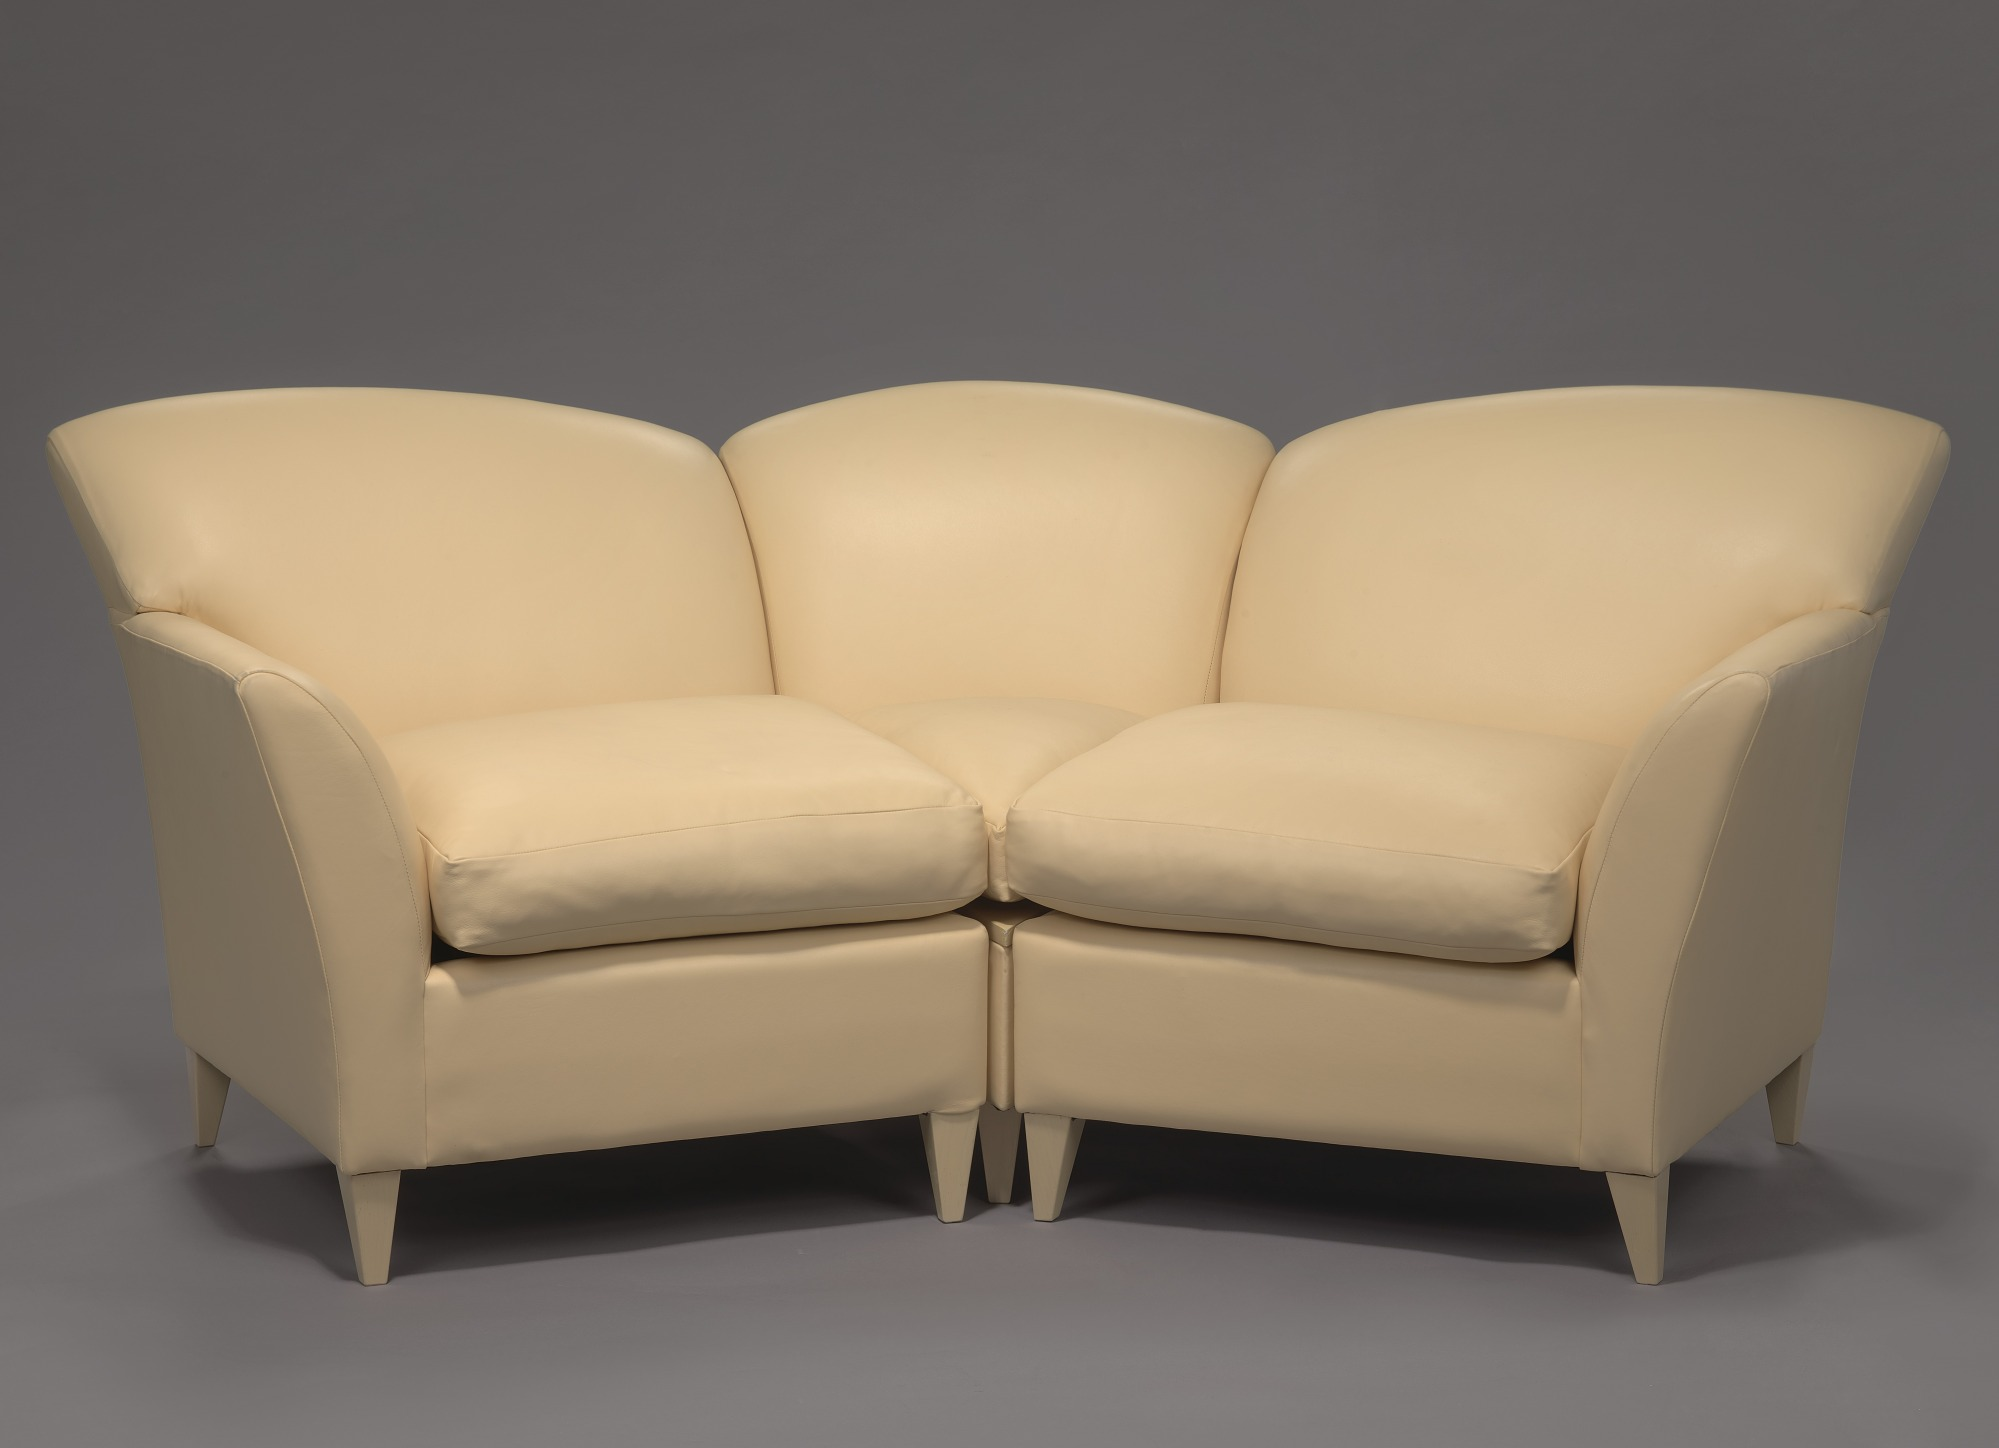 Couch From The Set Of The Oprah Winfrey Show In Harpo Studios